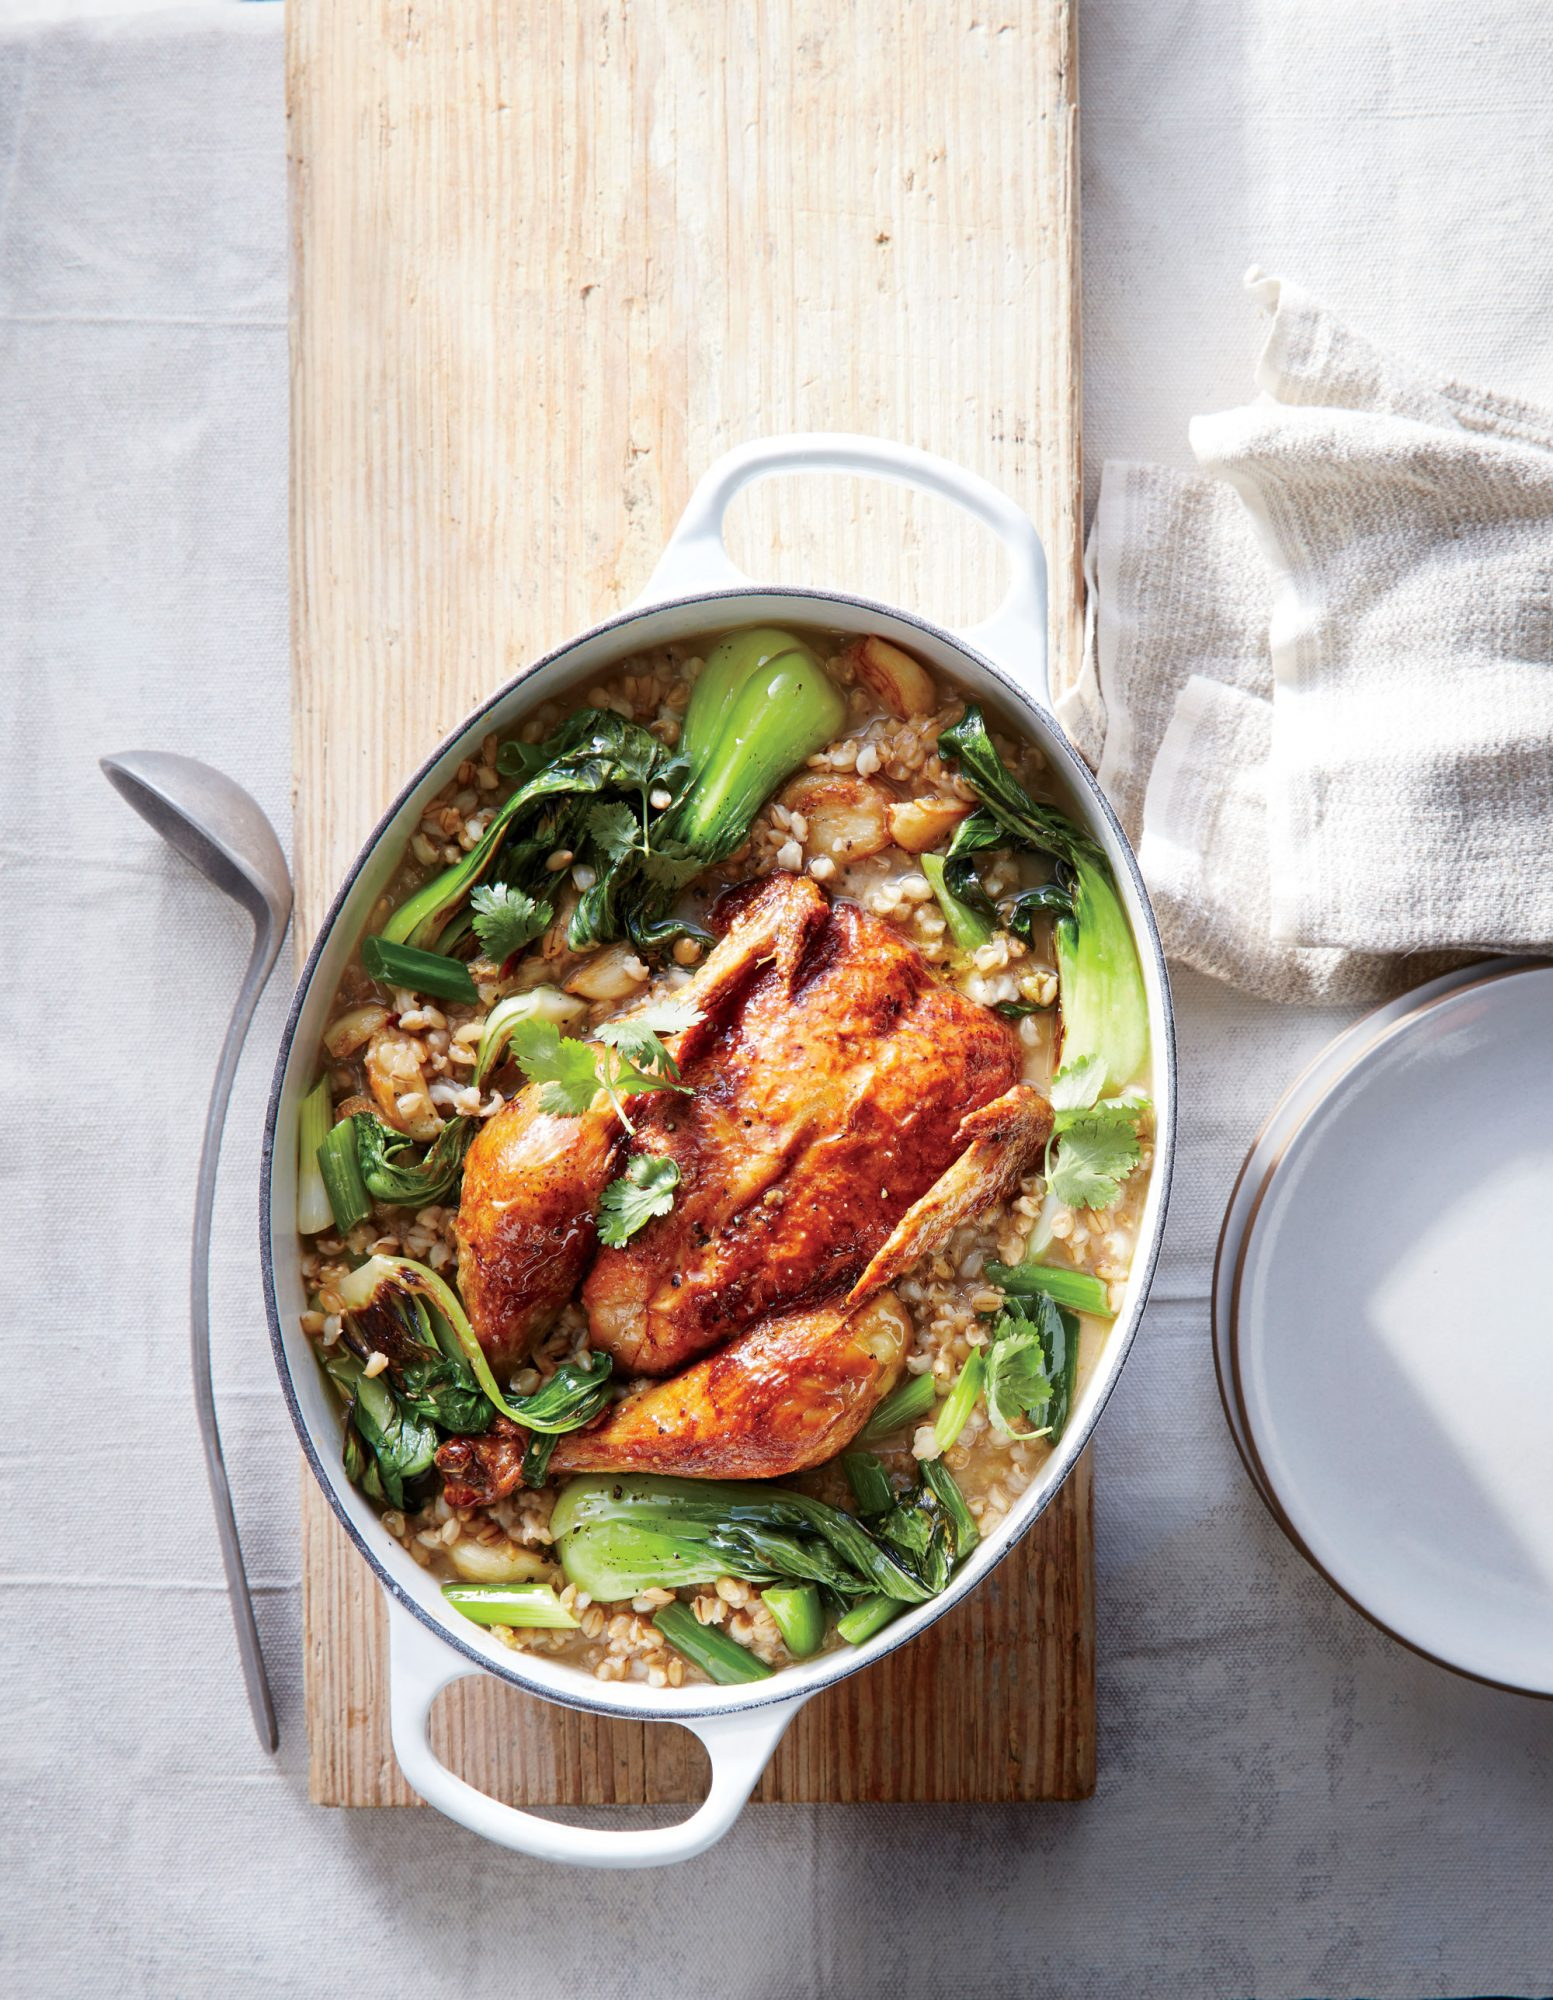 Miso-Ginger Braised Chicken with Bok Choy and Barley image